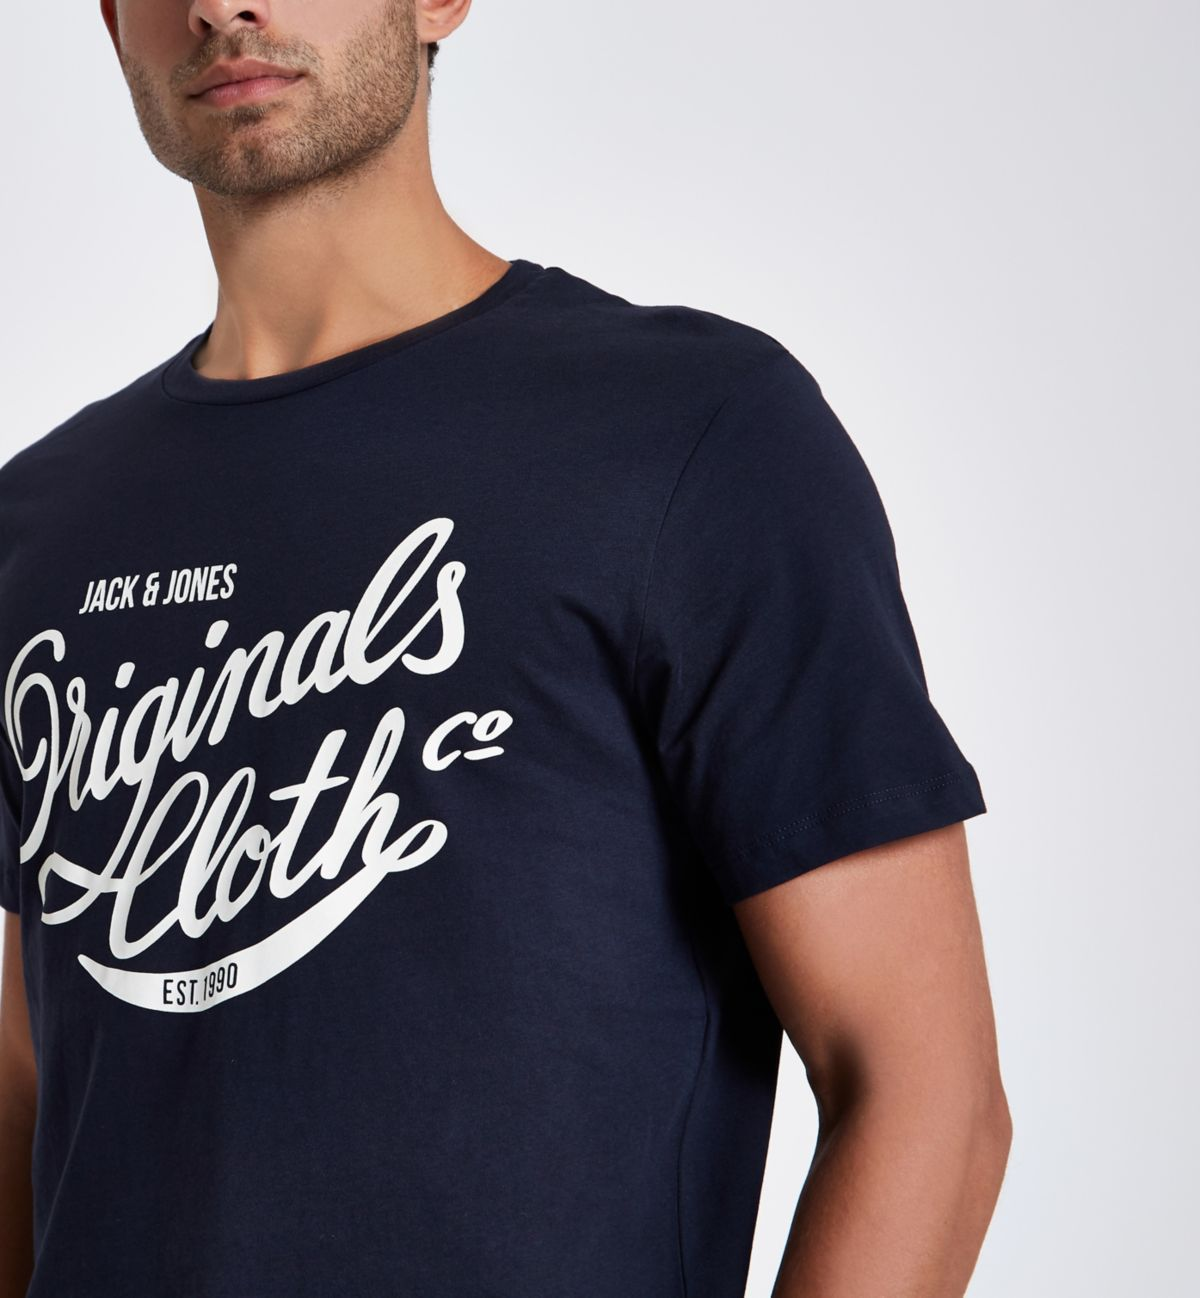 Jack & Jones navy print crew neck T-shirt